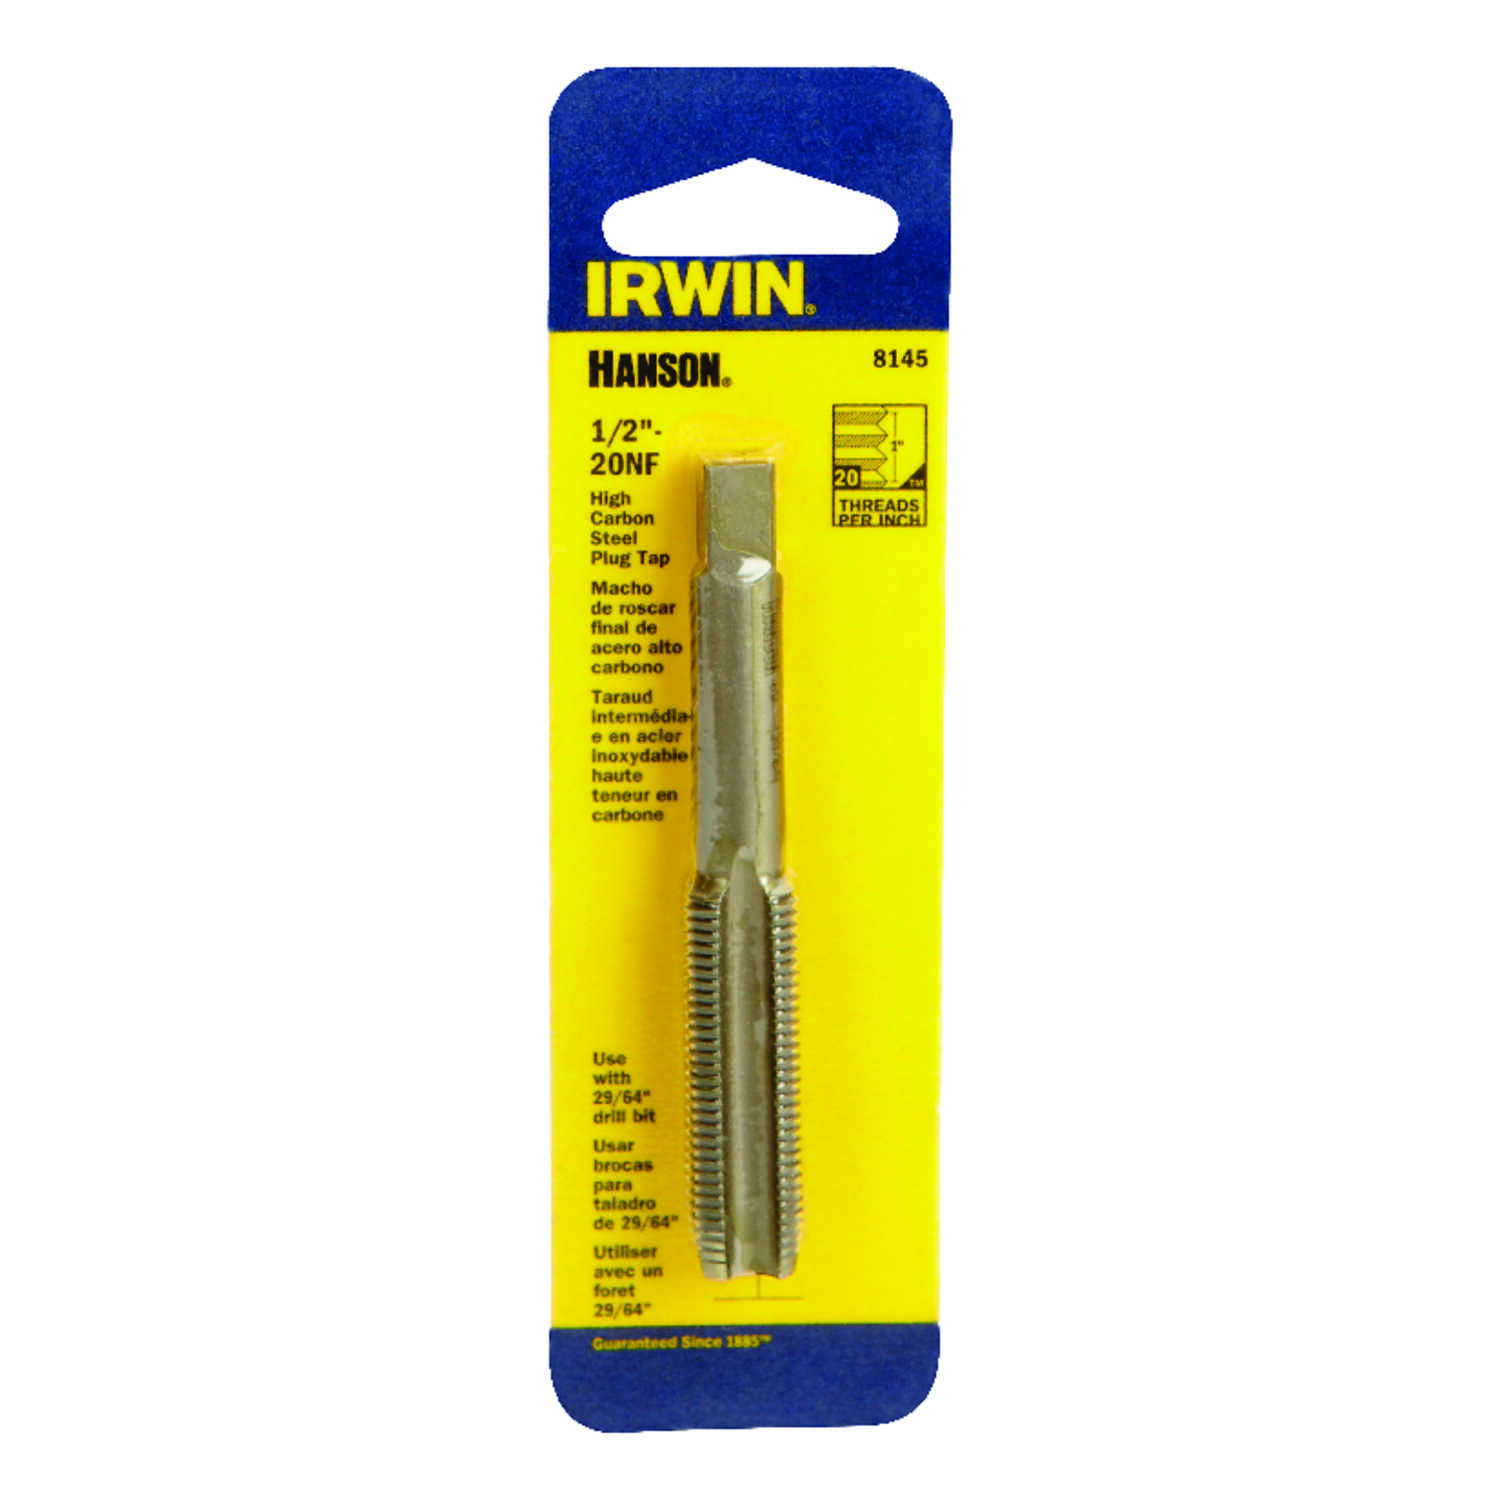 Irwin  Hanson  High Carbon Steel  SAE  Fraction Tap  1/2 in.-20NF  1 pc.